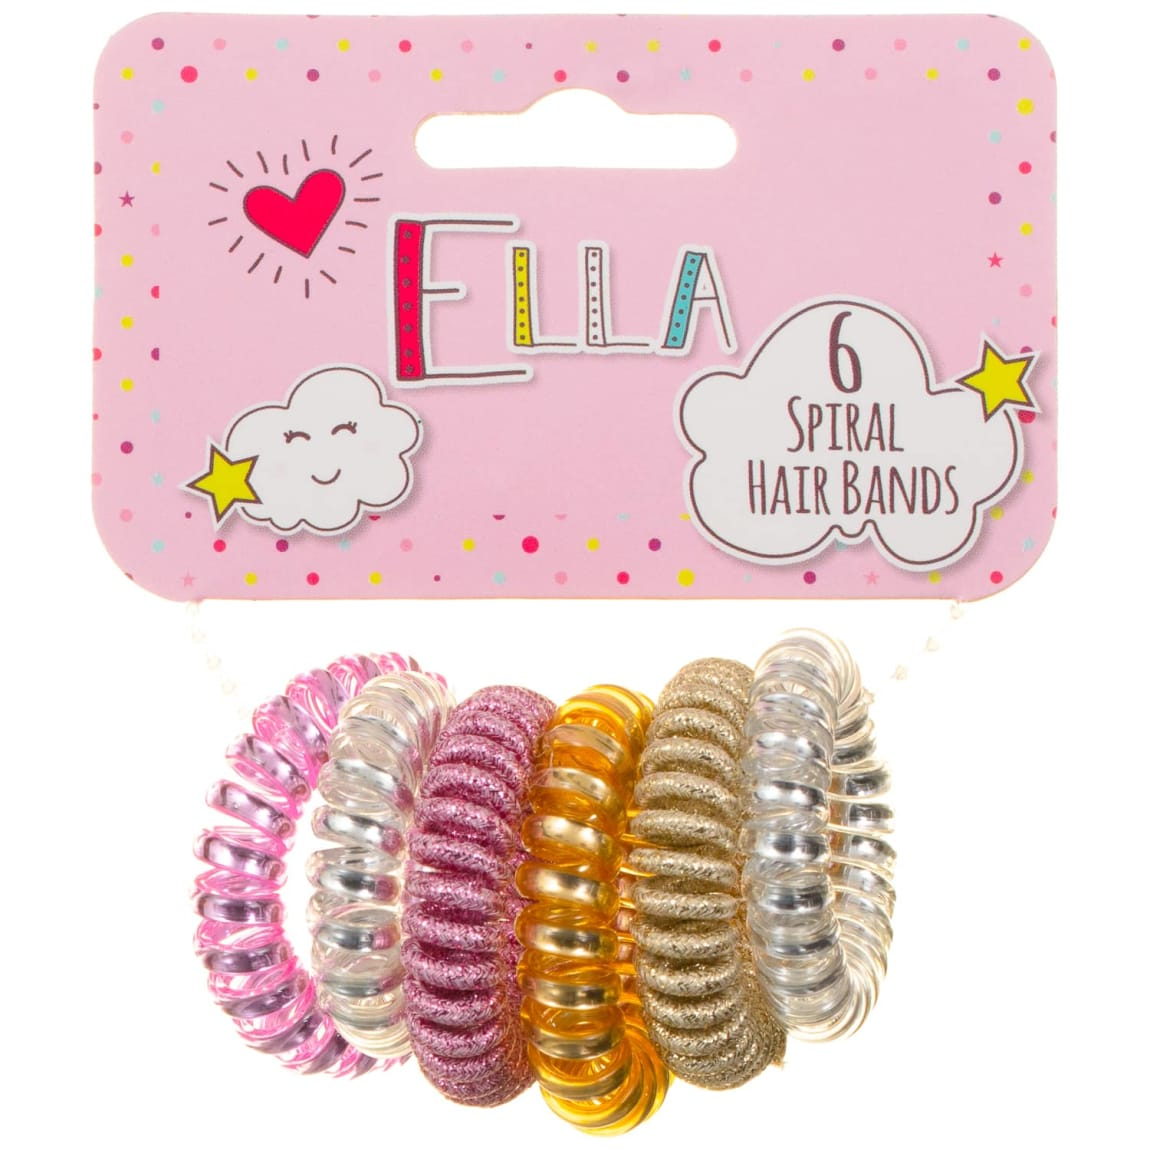 Ella Spiral Hair Bands 6pk - Metallic